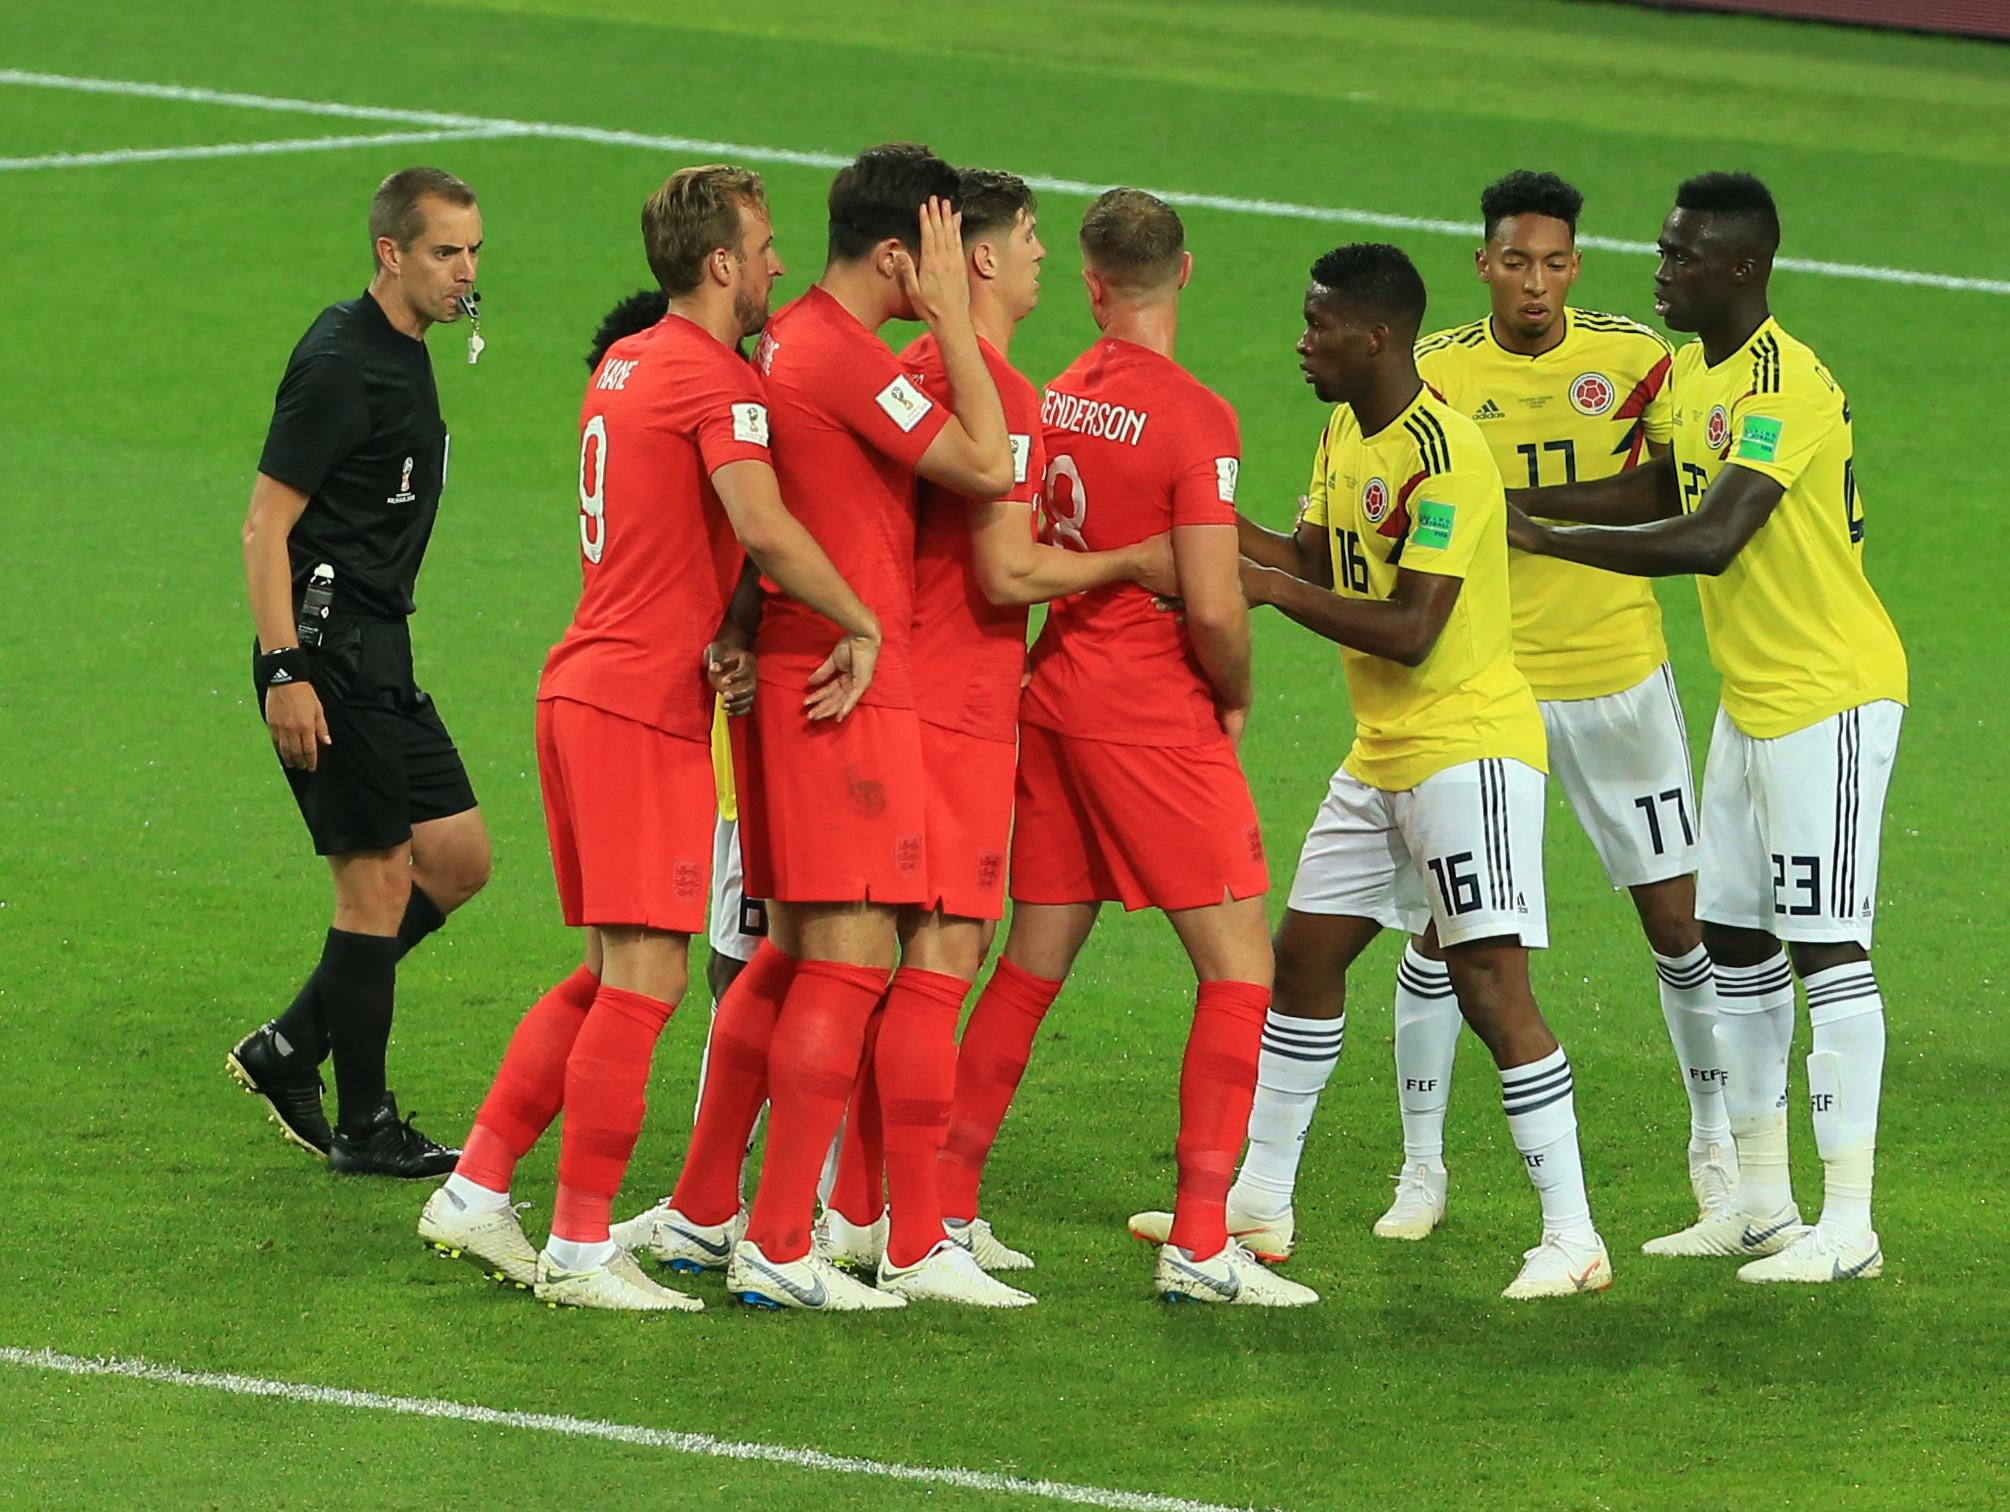 Some variation on the human centipede proved useful for England